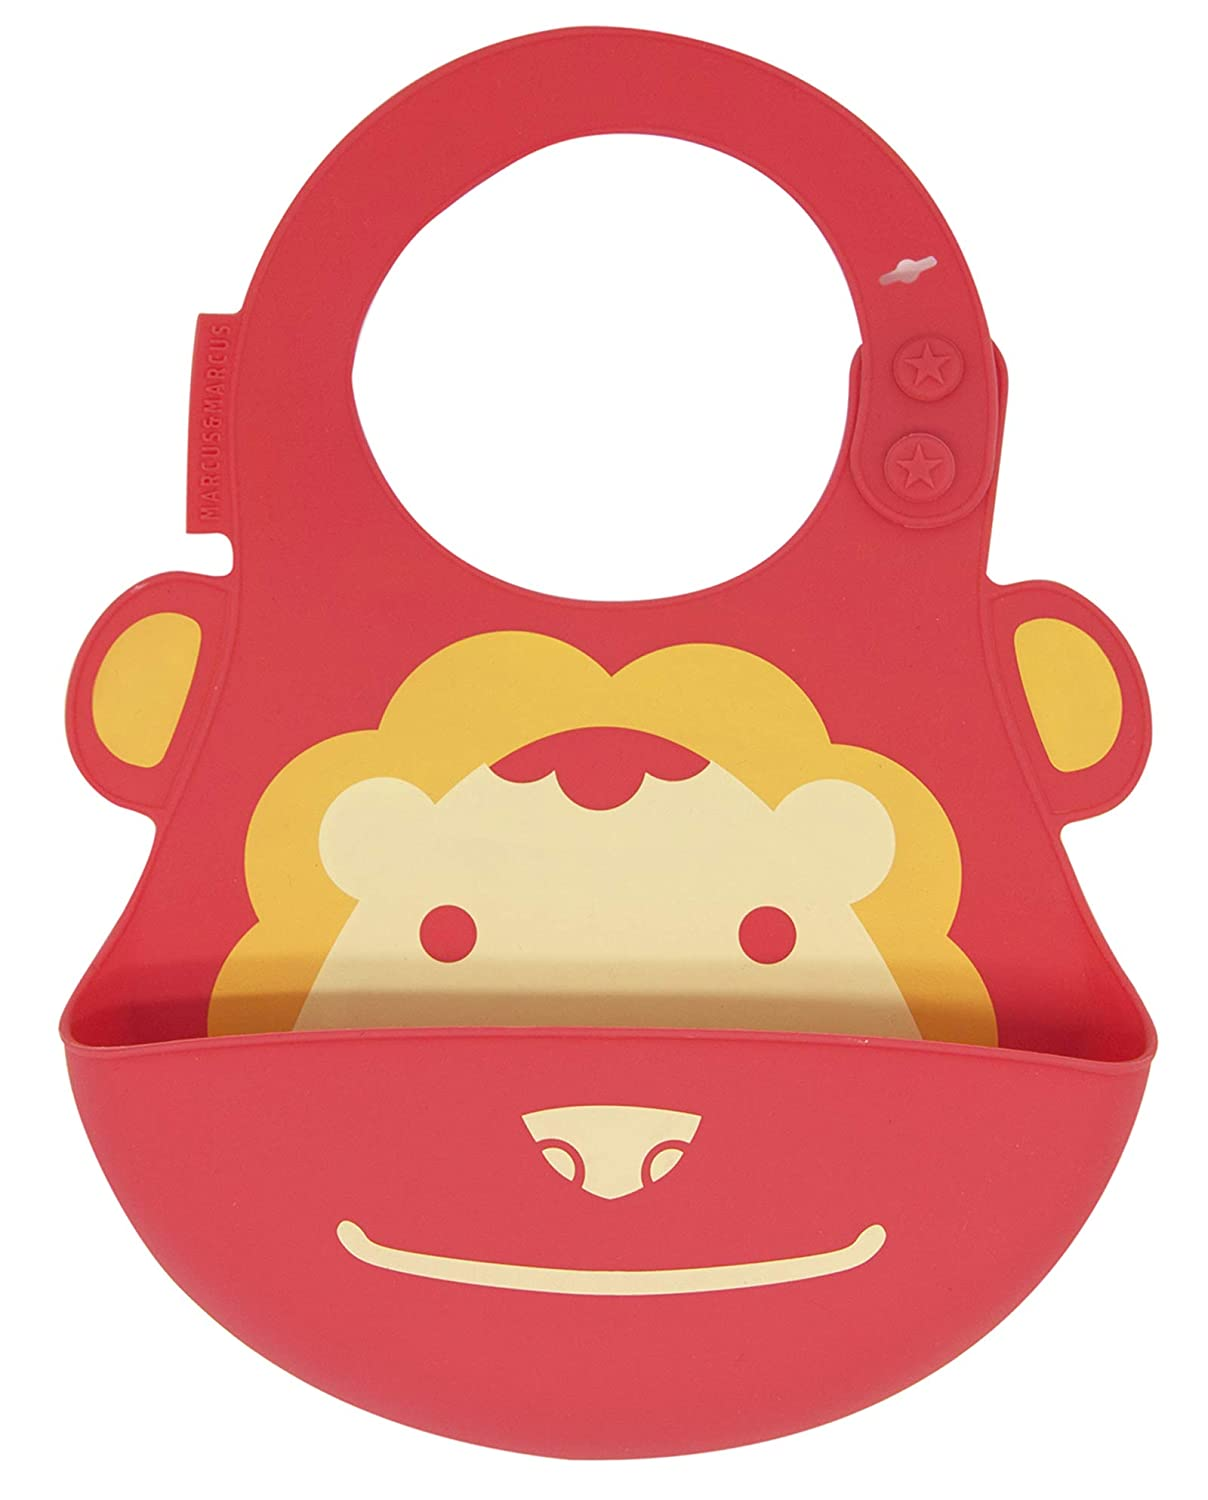 Baby and Toddler Bib, Food Grade Silicone, Easy Clean Up, Red Lion by Marcus & Marcus